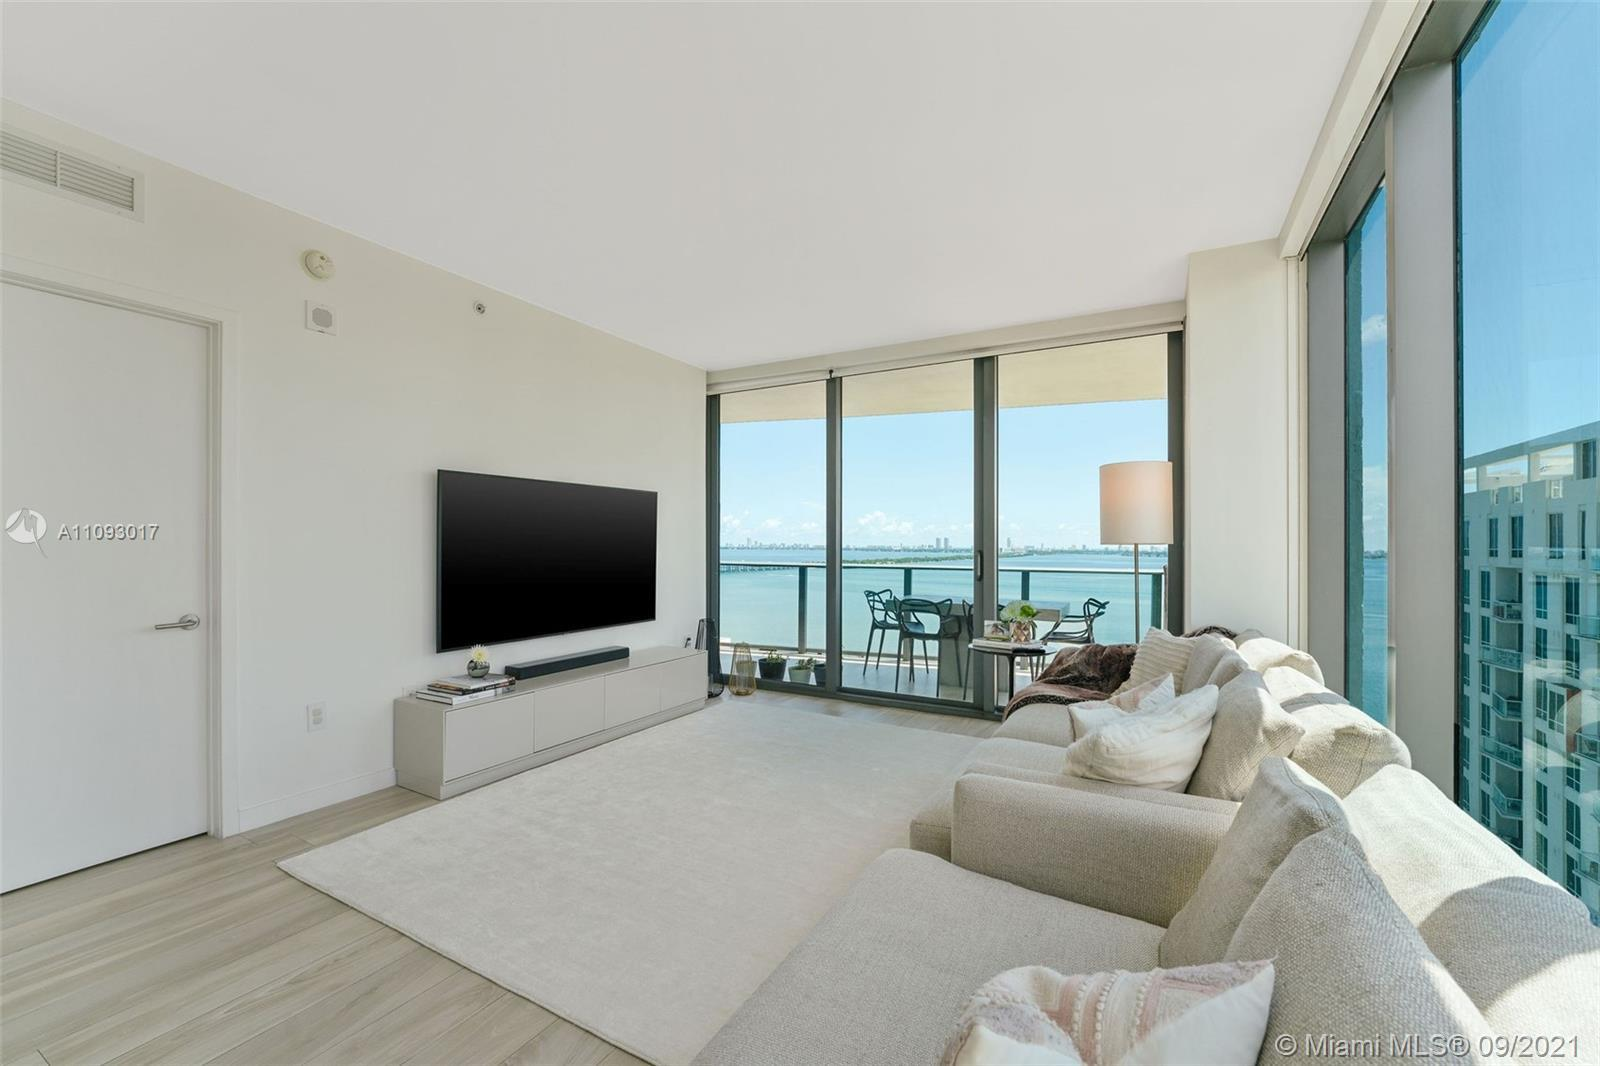 FABULOUS 3 BEDRM 2.5 BATH SE CORNER UNIT LOCATED AT ICON BAY WATERFRONT TOWER!  SUNRISE AND SUNSET B